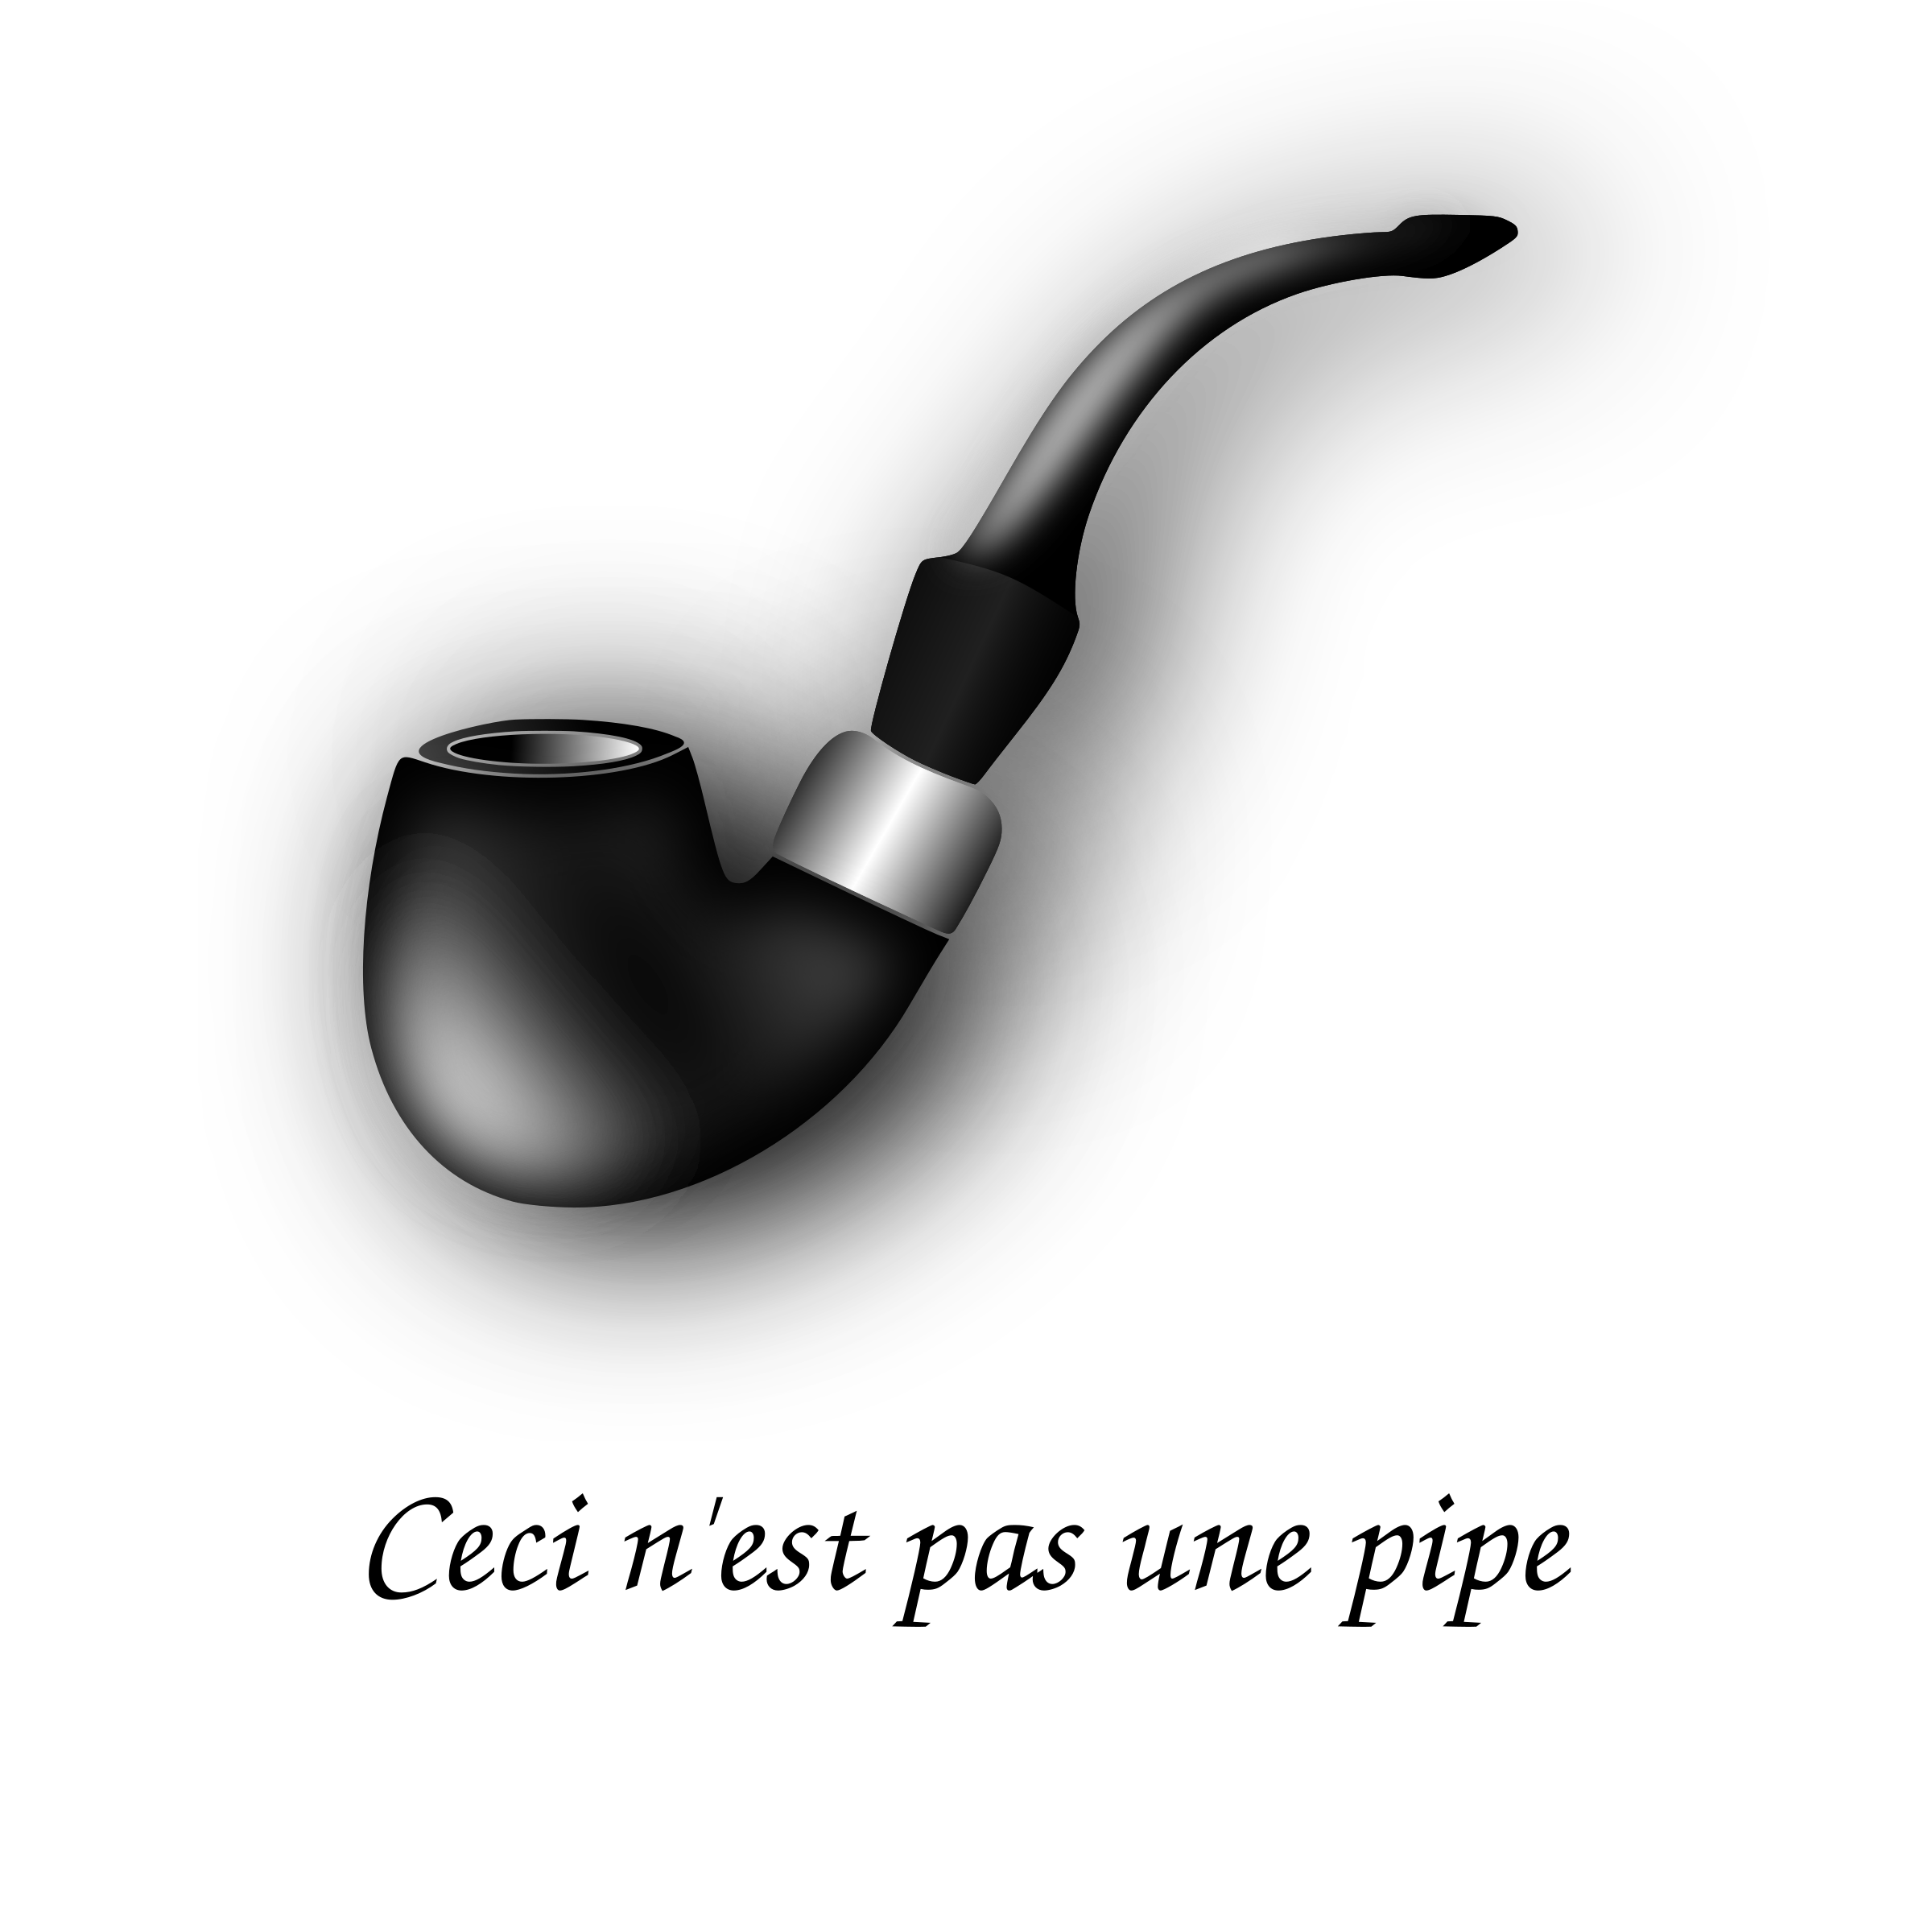 Ceci n'est pas une pipe by smelly_boots